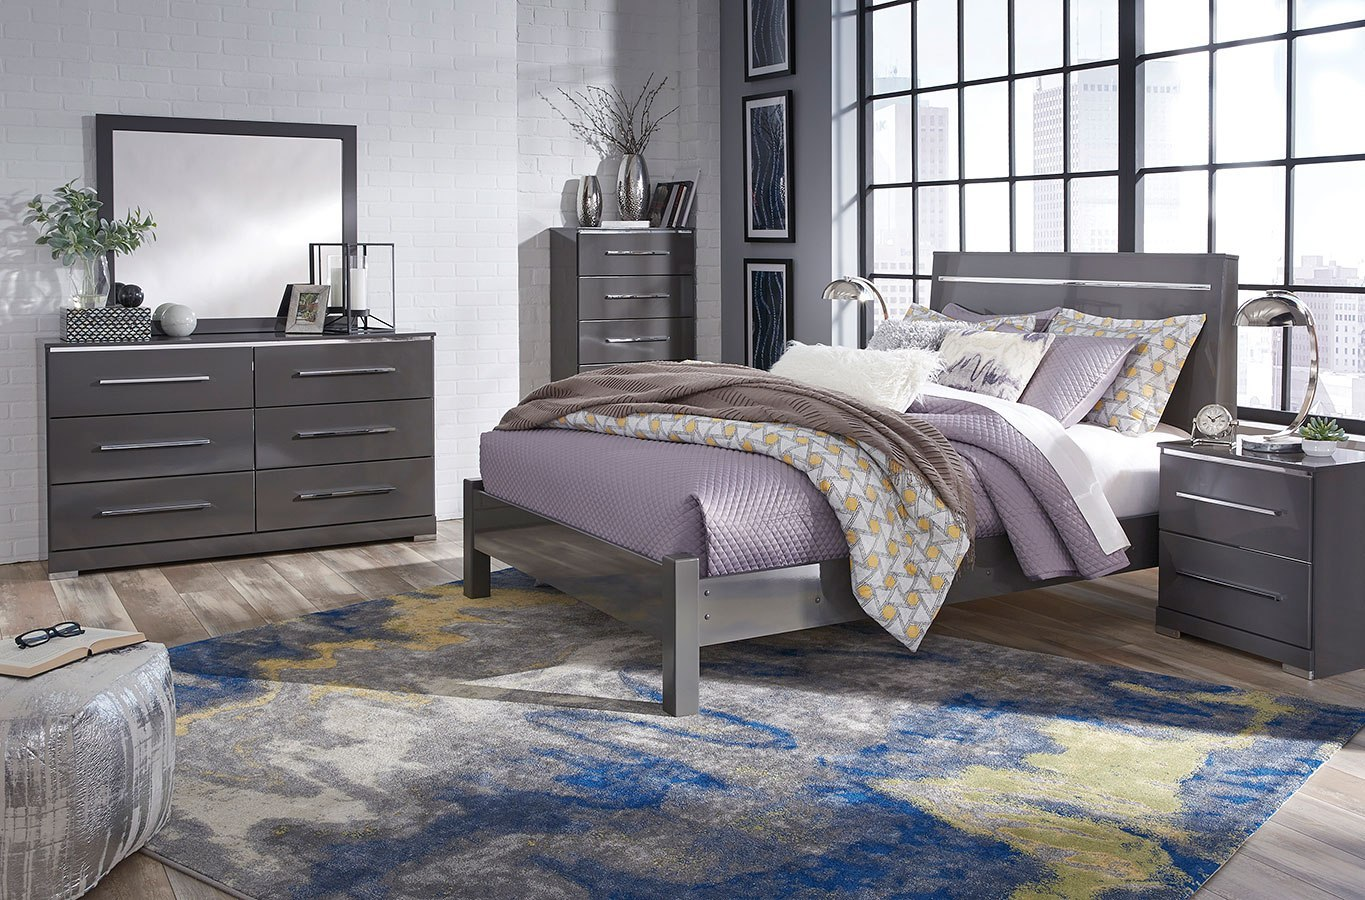 Steelson panel bedroom set by signature design by ashley - Ashley bedroom furniture reviews ...